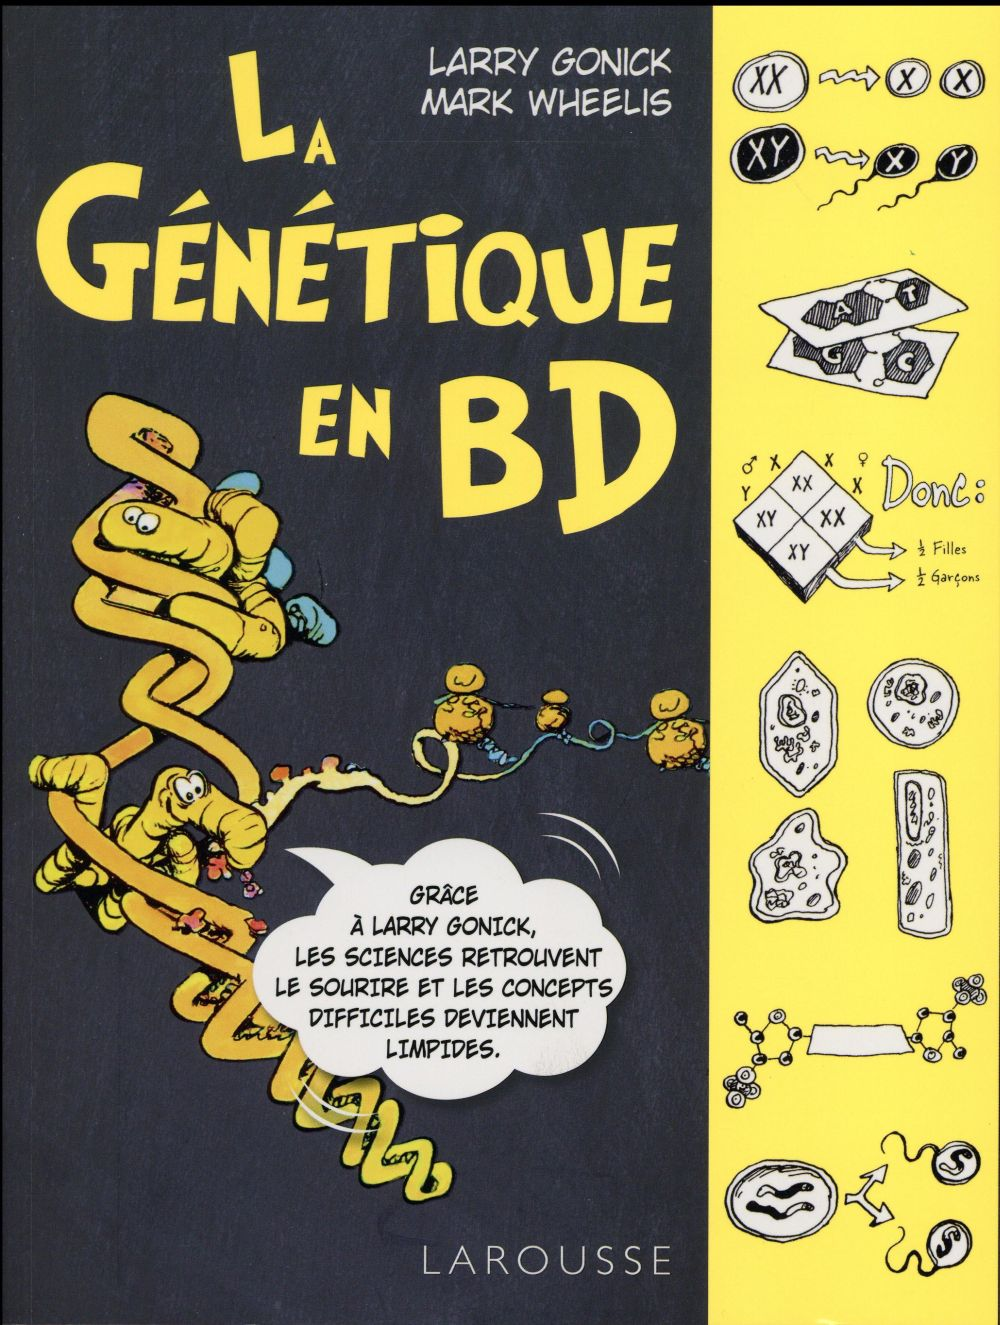 La genetique en bd